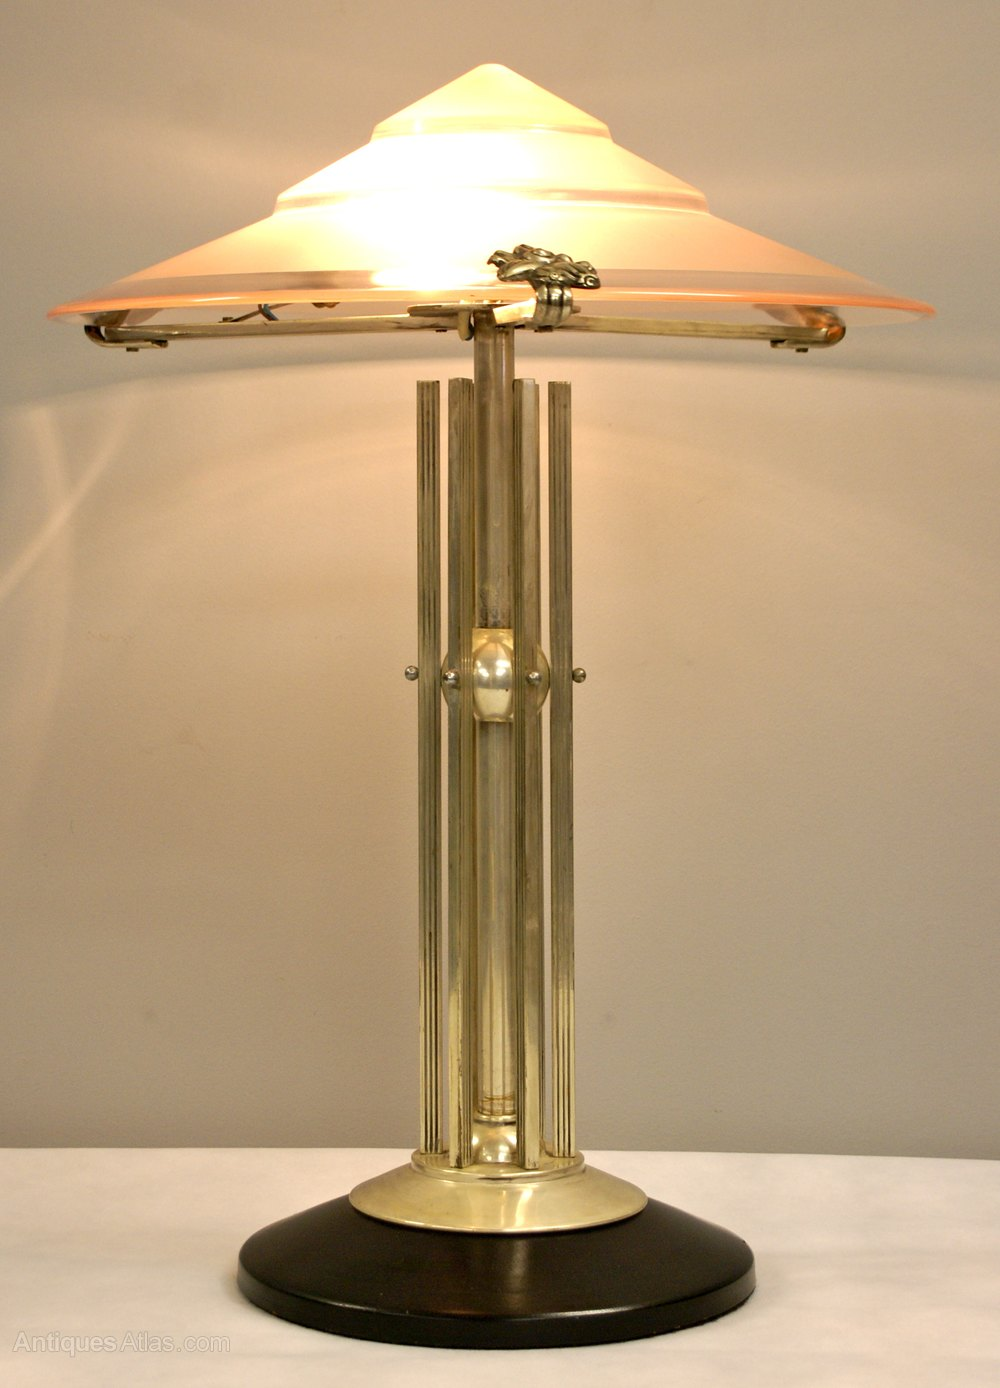 Antiques atlas an art deco table lamp for Art deco style lamp